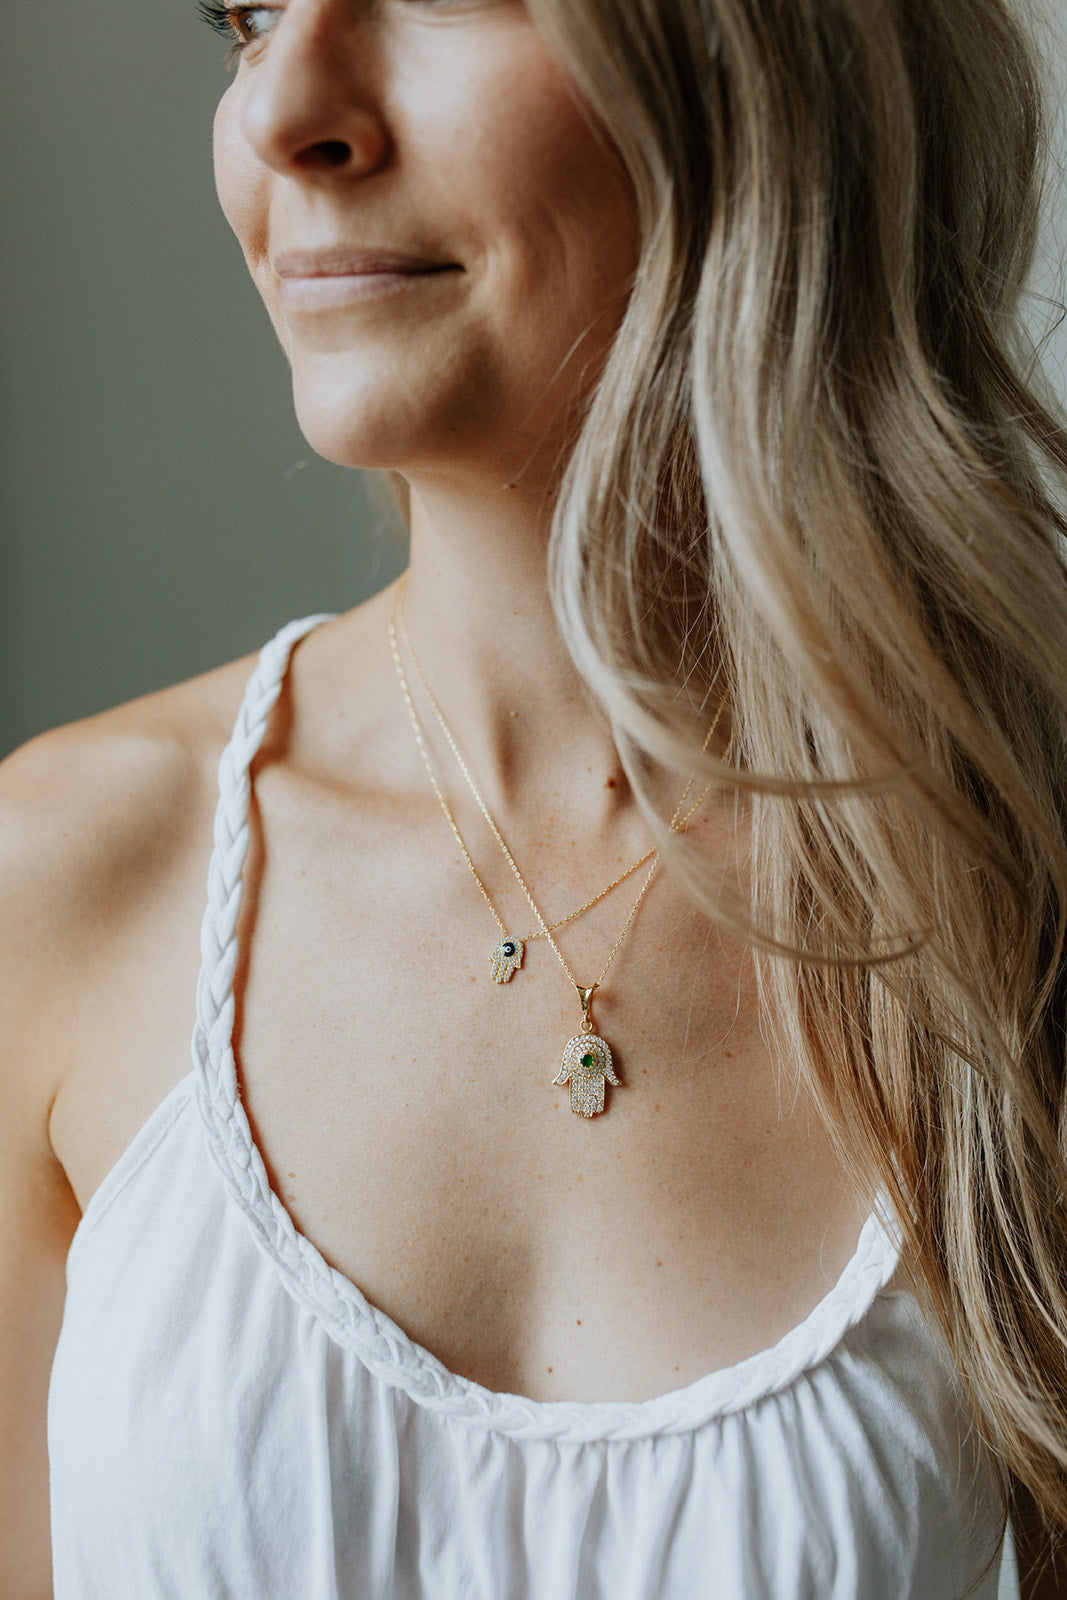 KISA necklaces for layering